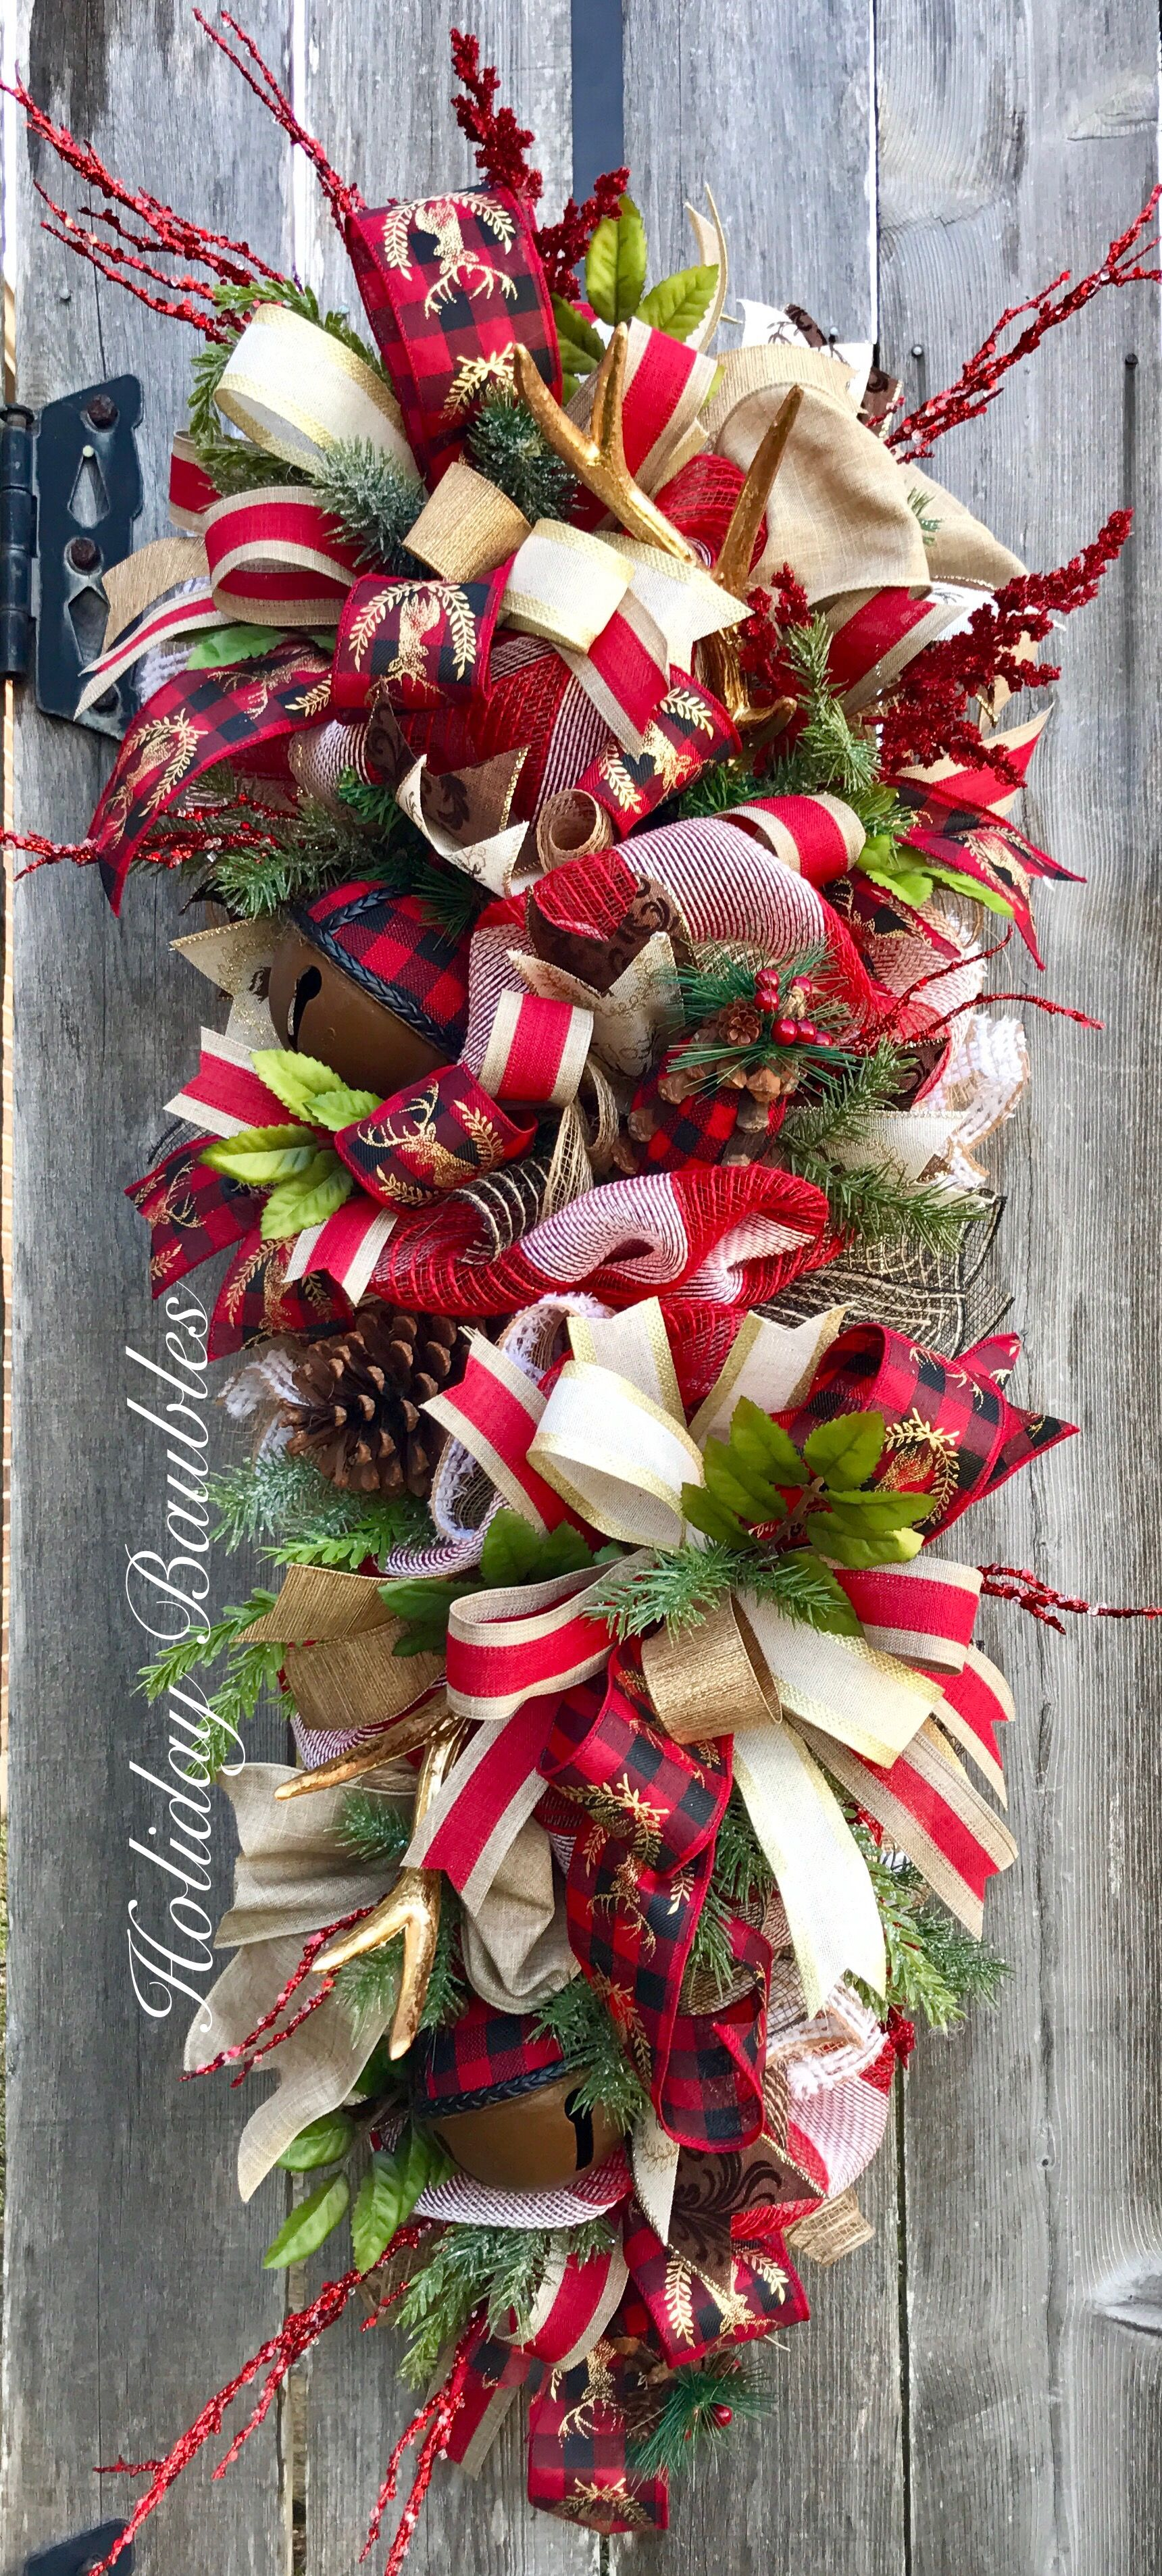 43+ Country love crafts reviews ideas in 2021